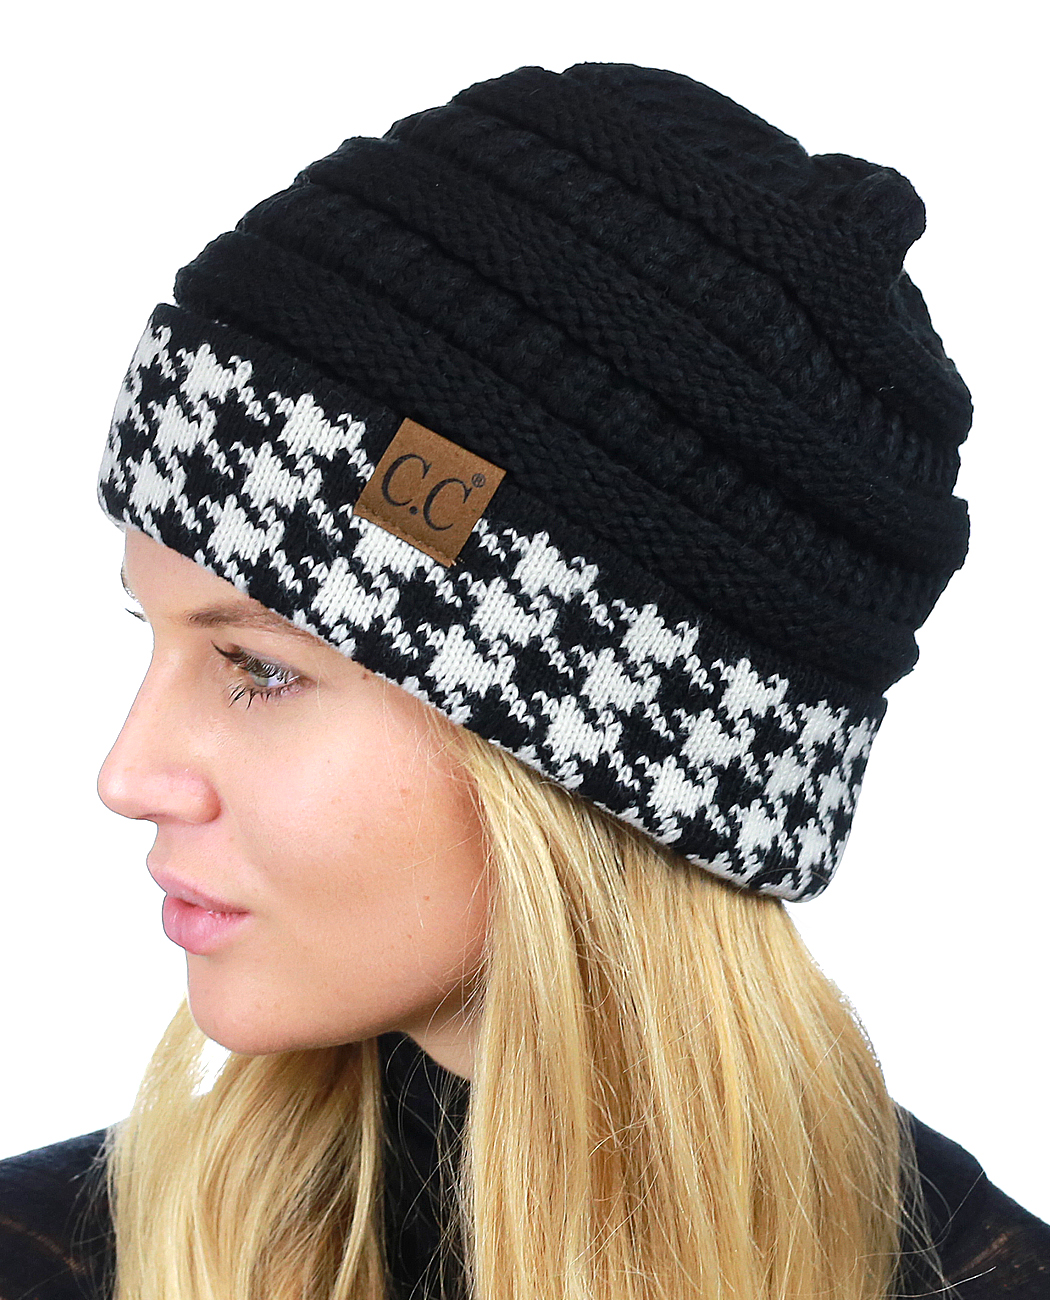 C.C Cable Knit Soft Stretch Multicolor Stitch Cuff Skully Beanie Hat ... 39f179441df